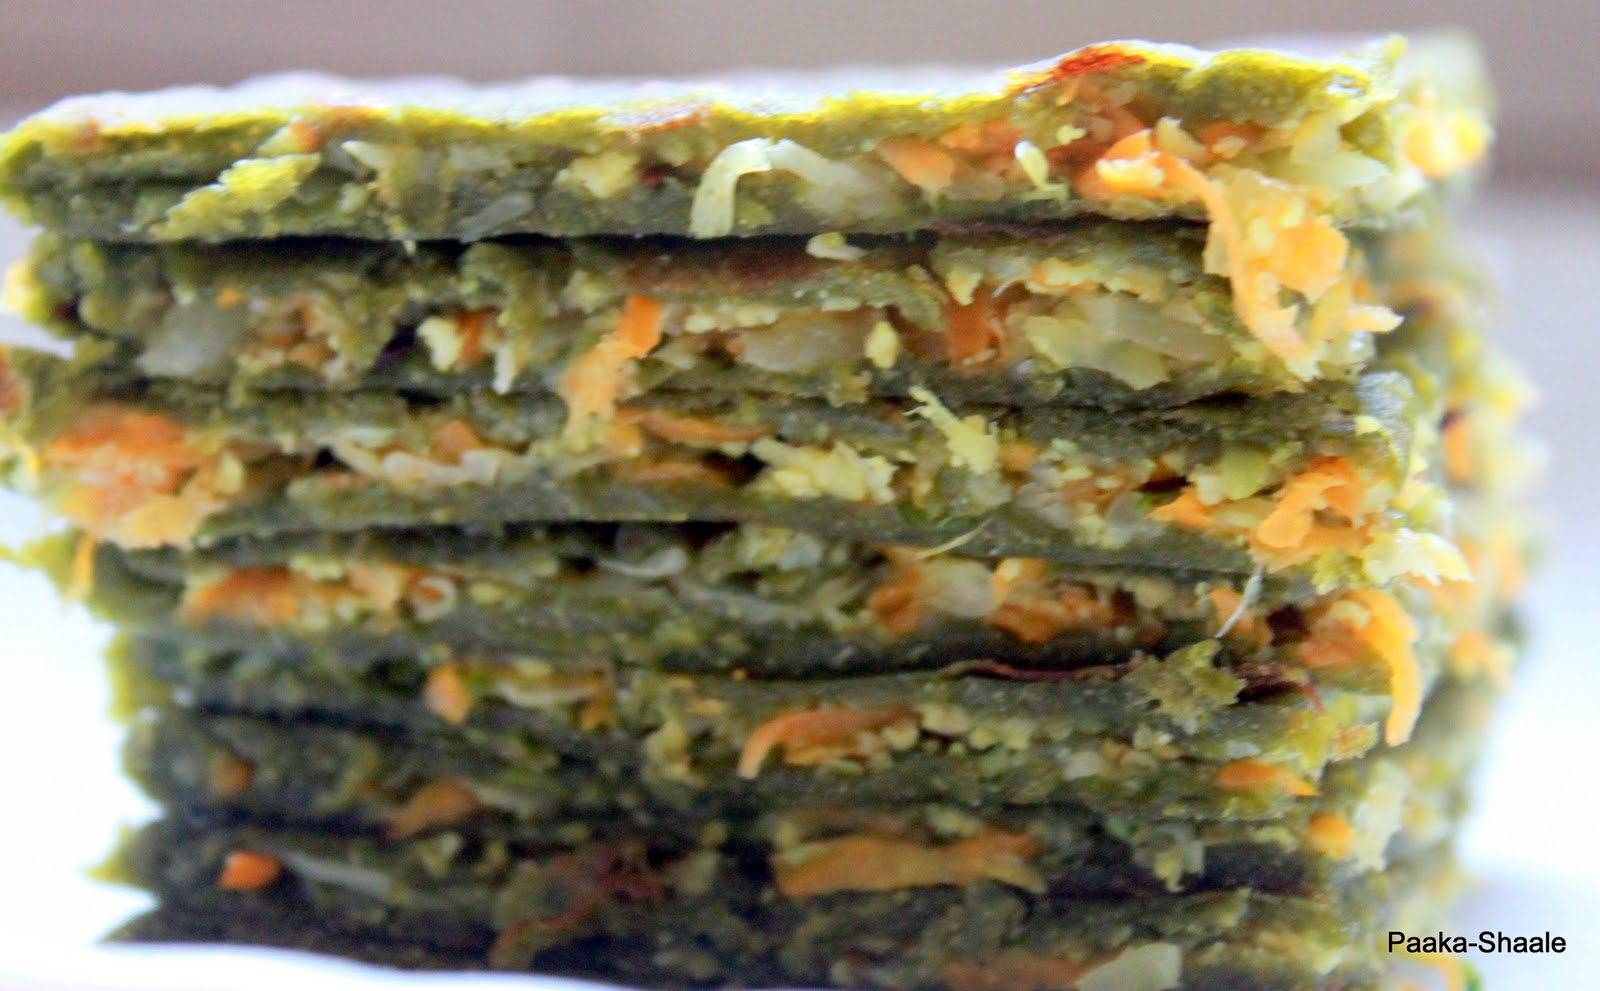 Paaka-Shaale: Spinach, paneer and vegetable paratha